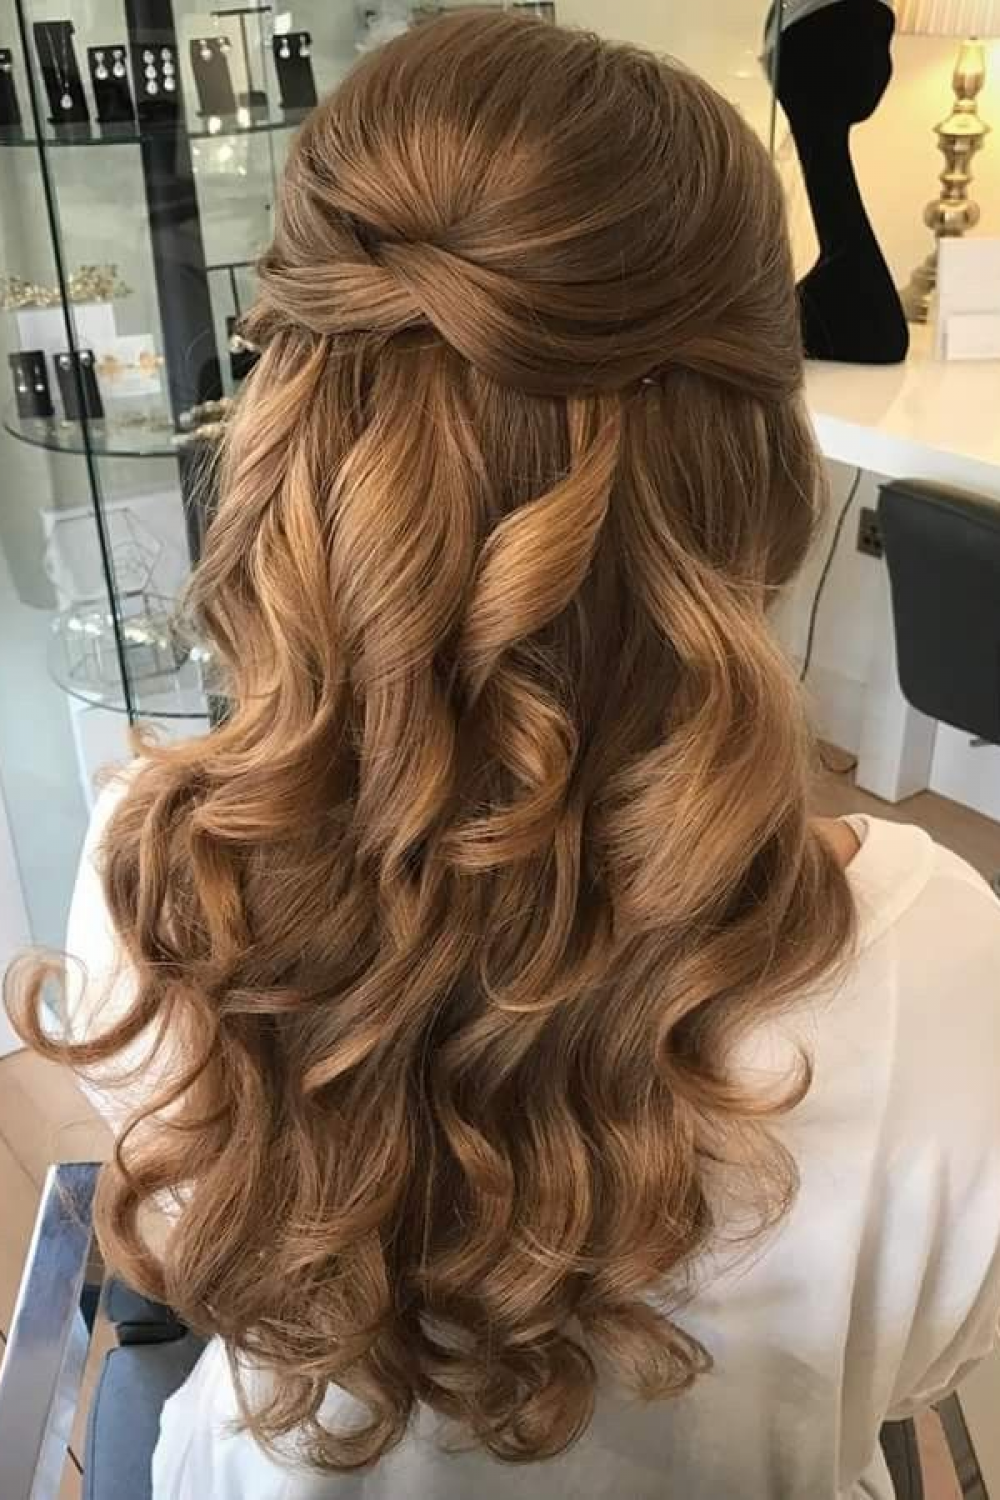 28 Easy Tips For Prom Hair Ideas For You, prom hair up dos, prom hair for strapless dress, prom ...